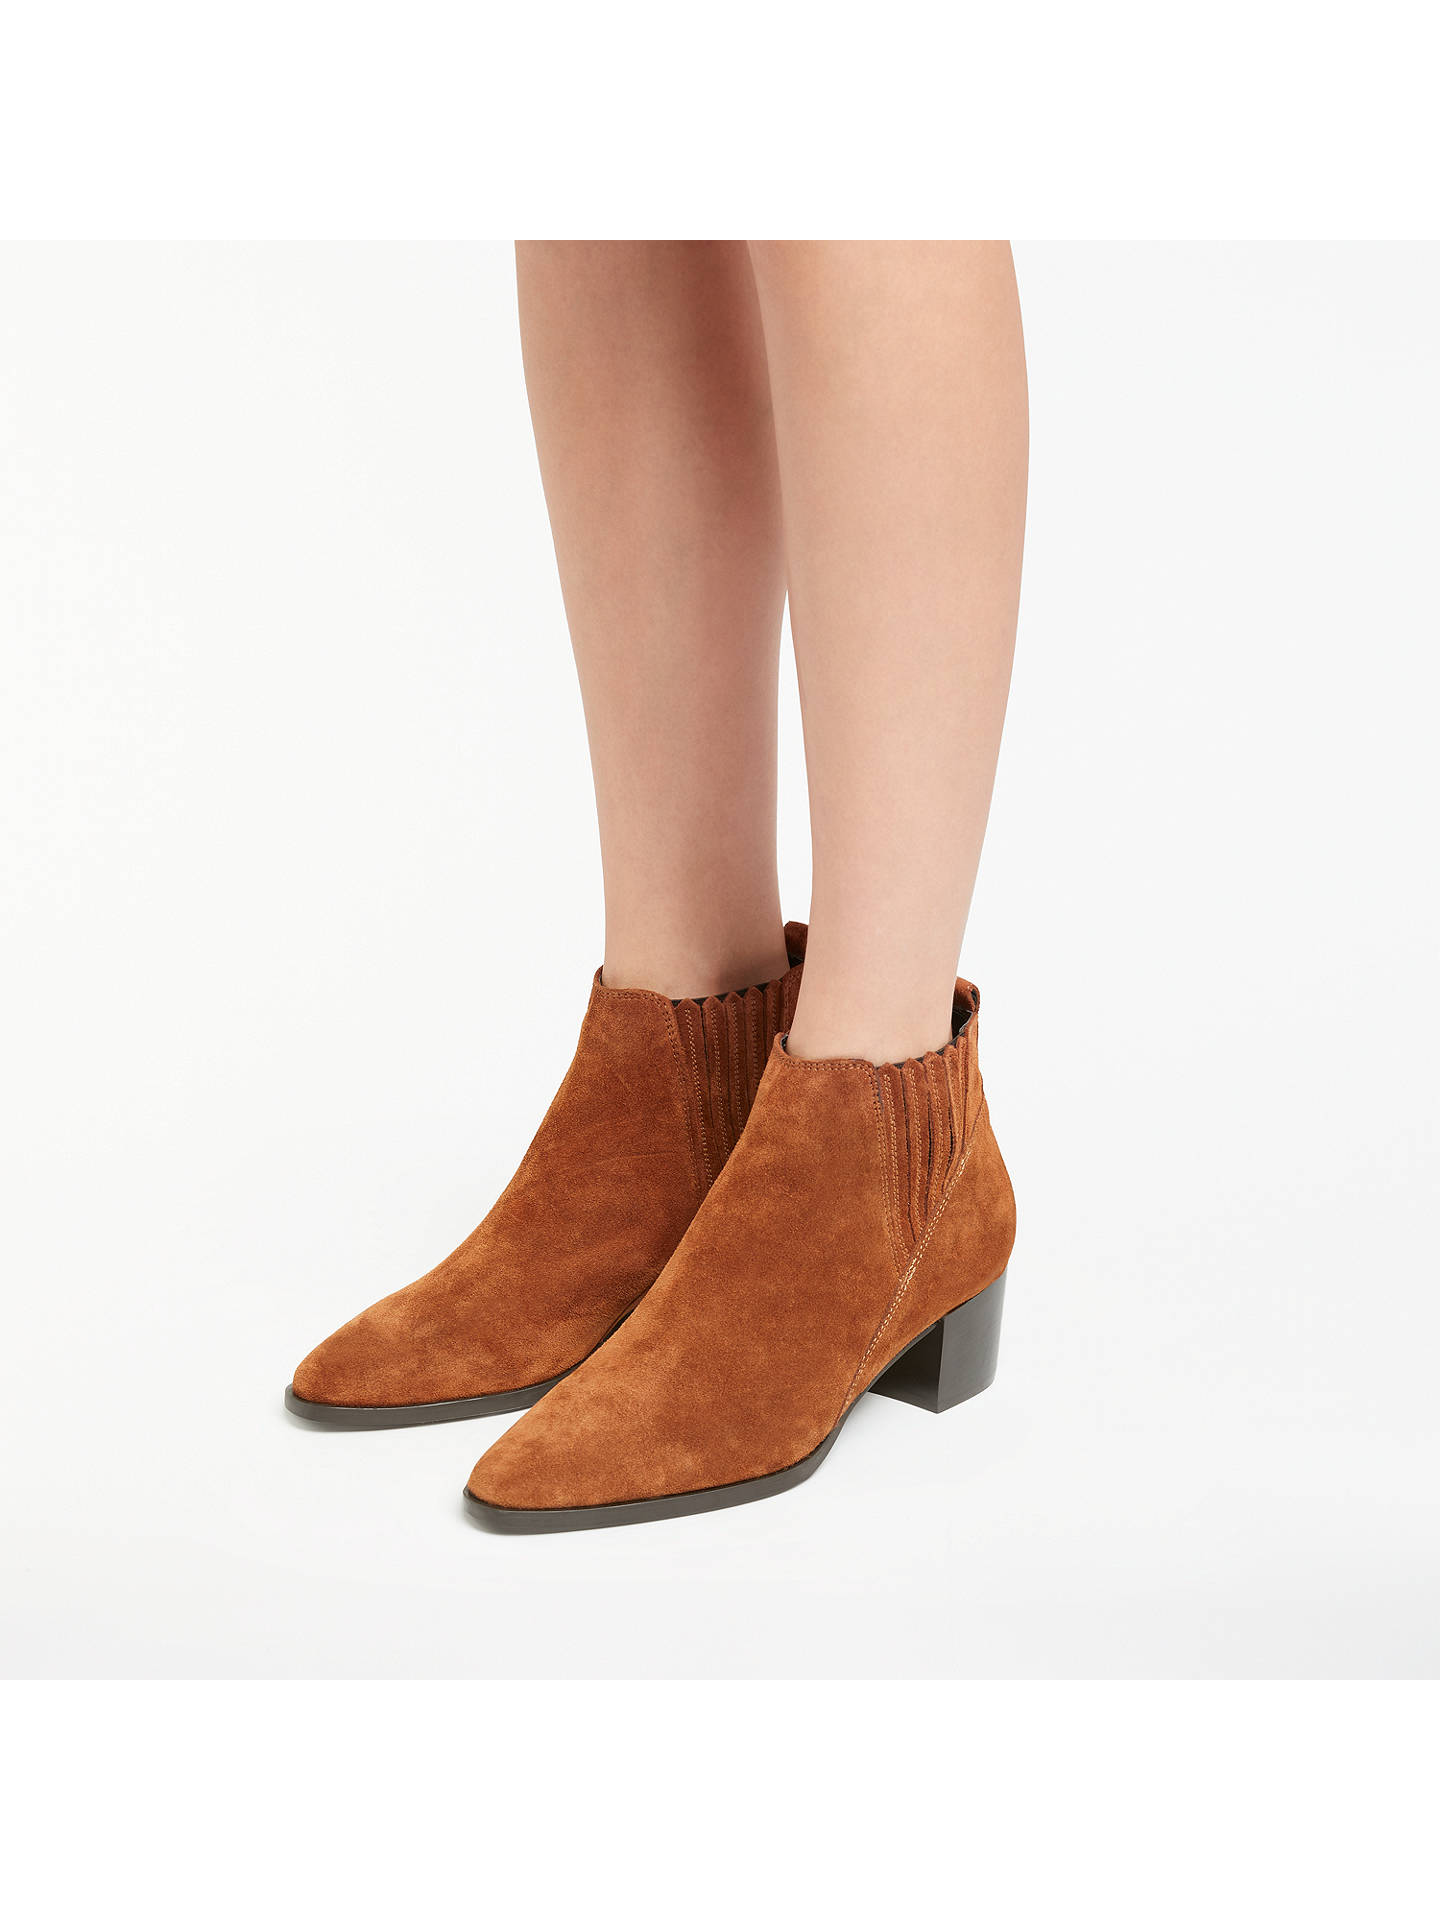 c6e18a7b6 ... Buy John Lewis Peyton Block Heeled Ankle Chelsea Boots, Cognac Suede, 3  Online at ...